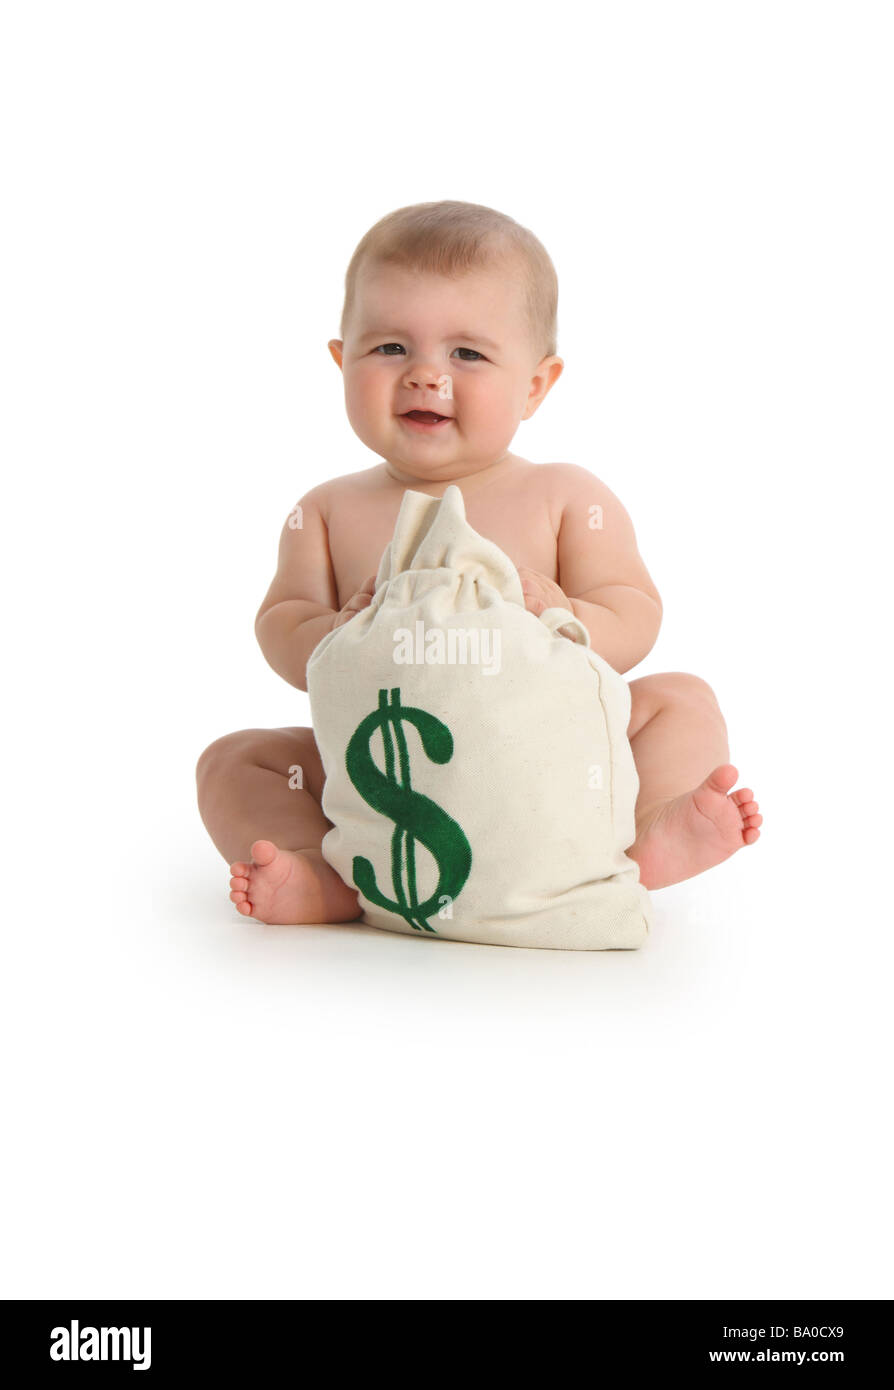 Baby with moneybag on white background - Stock Image